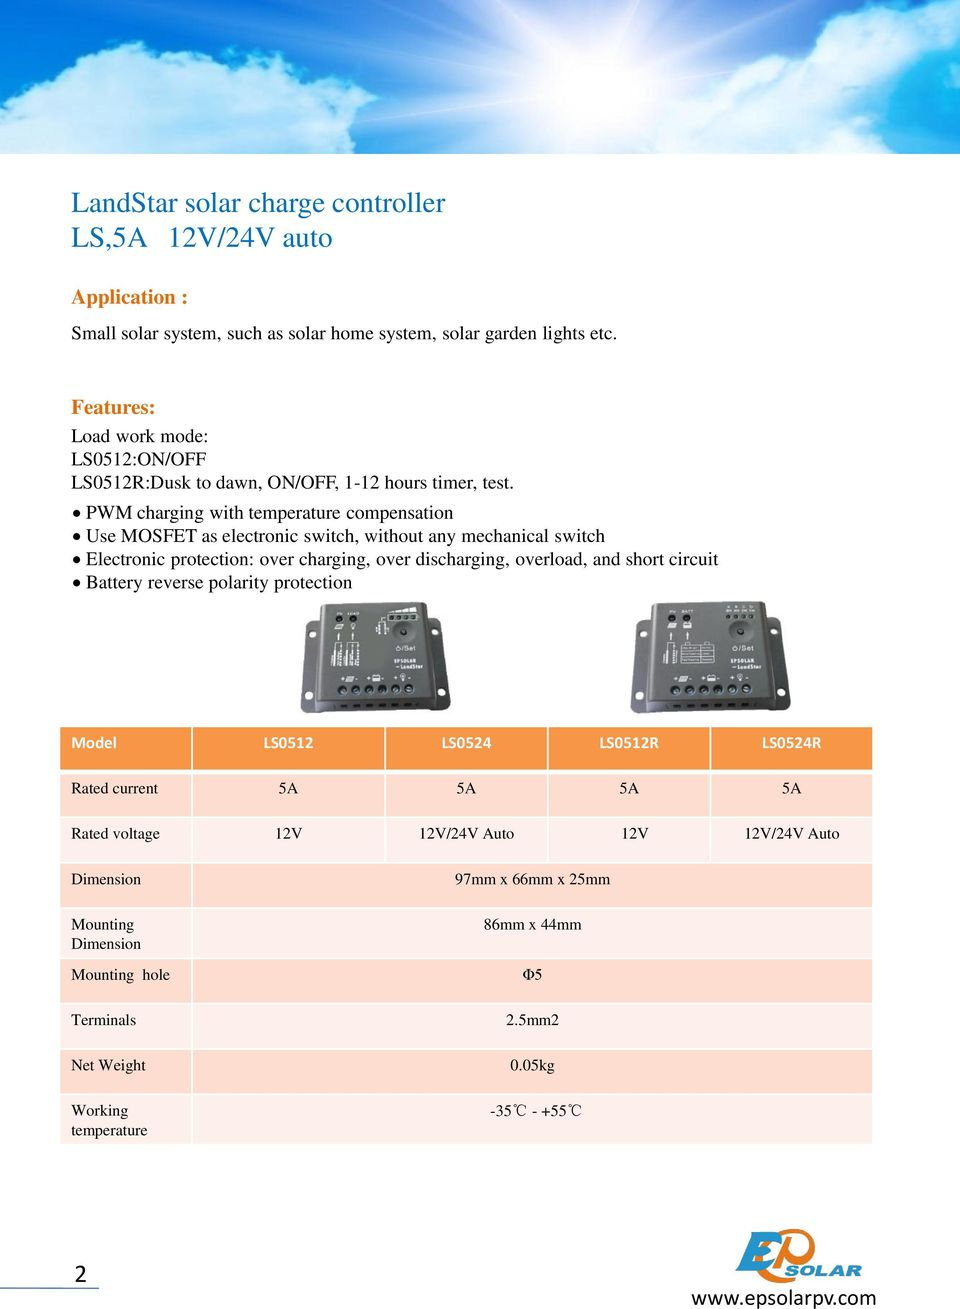 Product Catalogue Solar Charge Controller Inverter Beijing Digital Pwm Missouri Wind And Charging With Temperature Compensation Use Mosfet As Electronic Switch Without Any Mechanical 7 Landstar